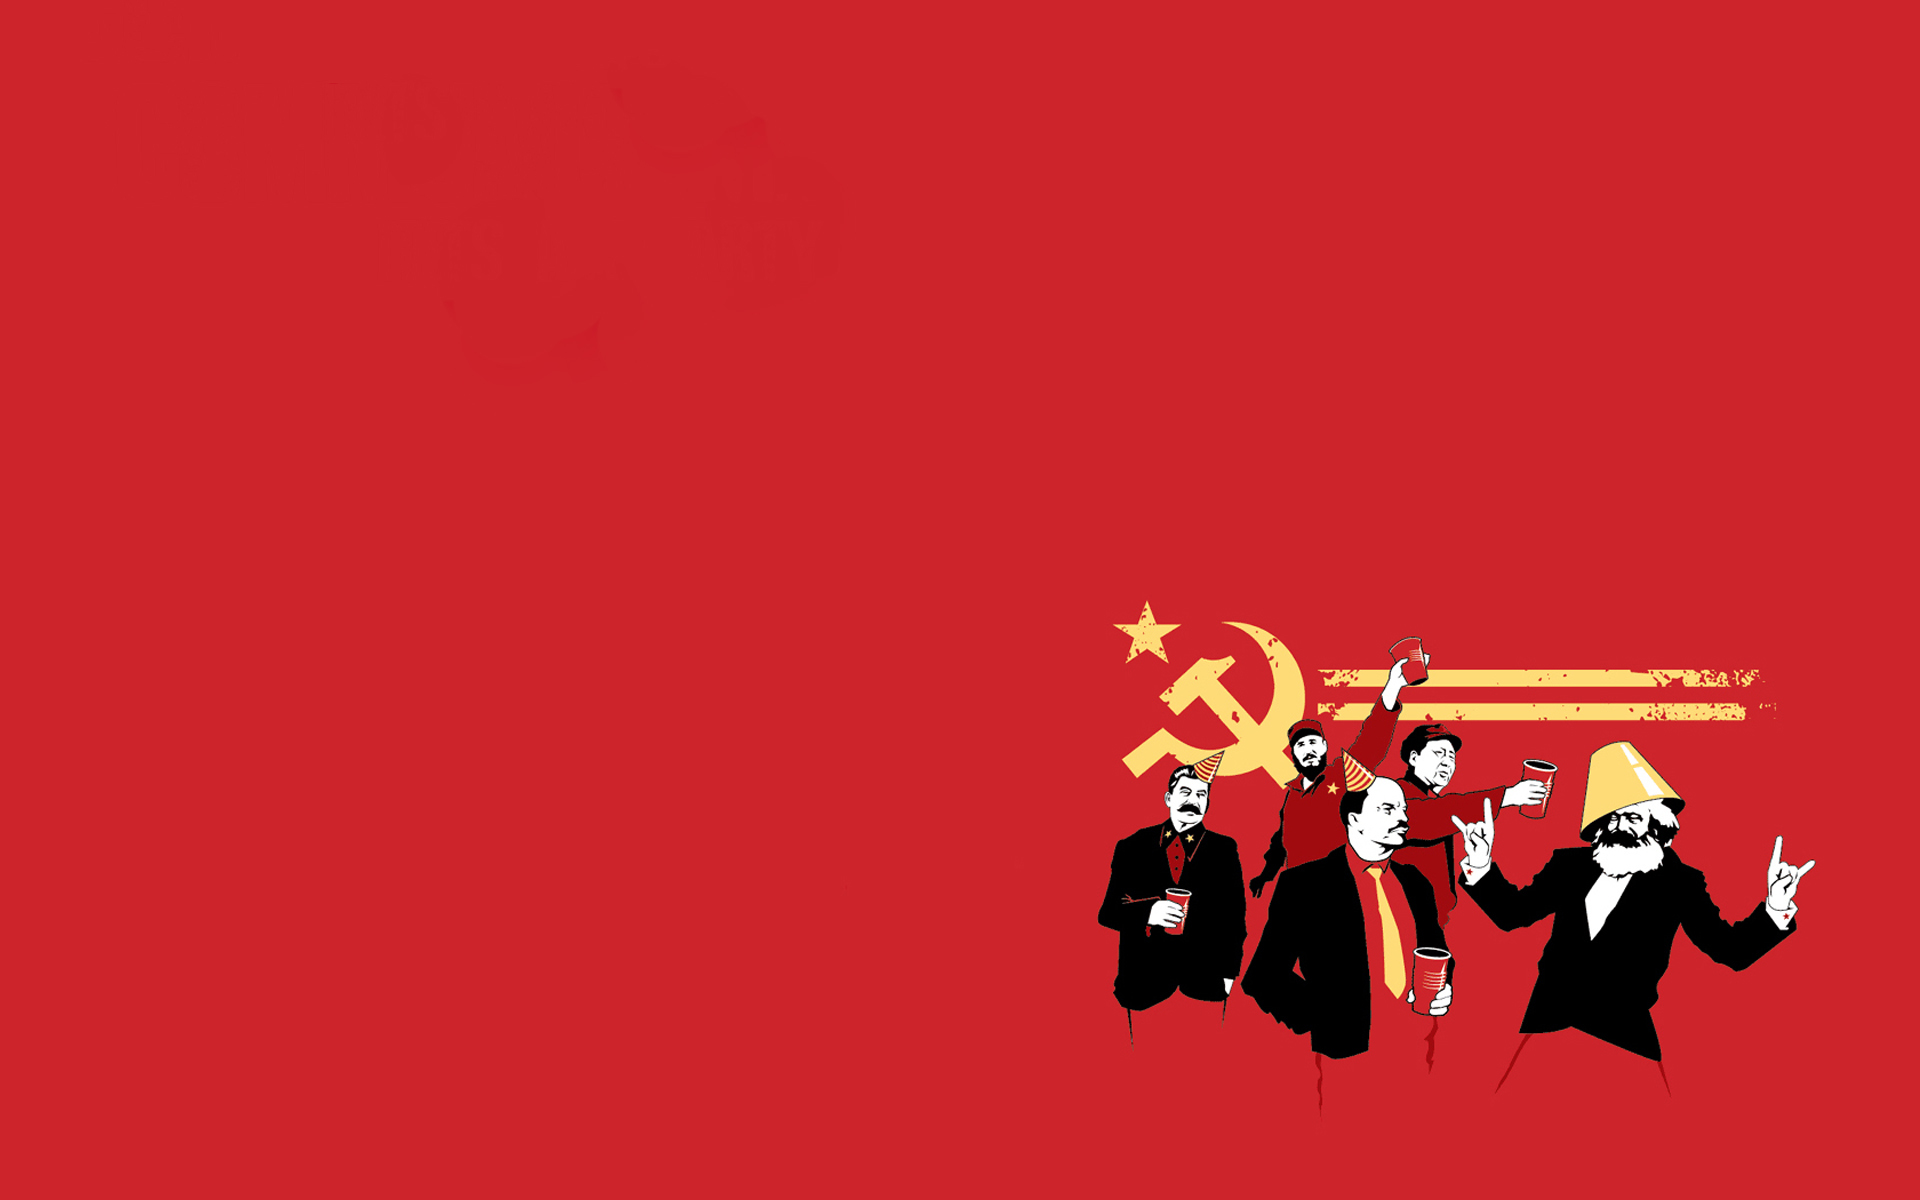 communism USSR HD Wallpaper